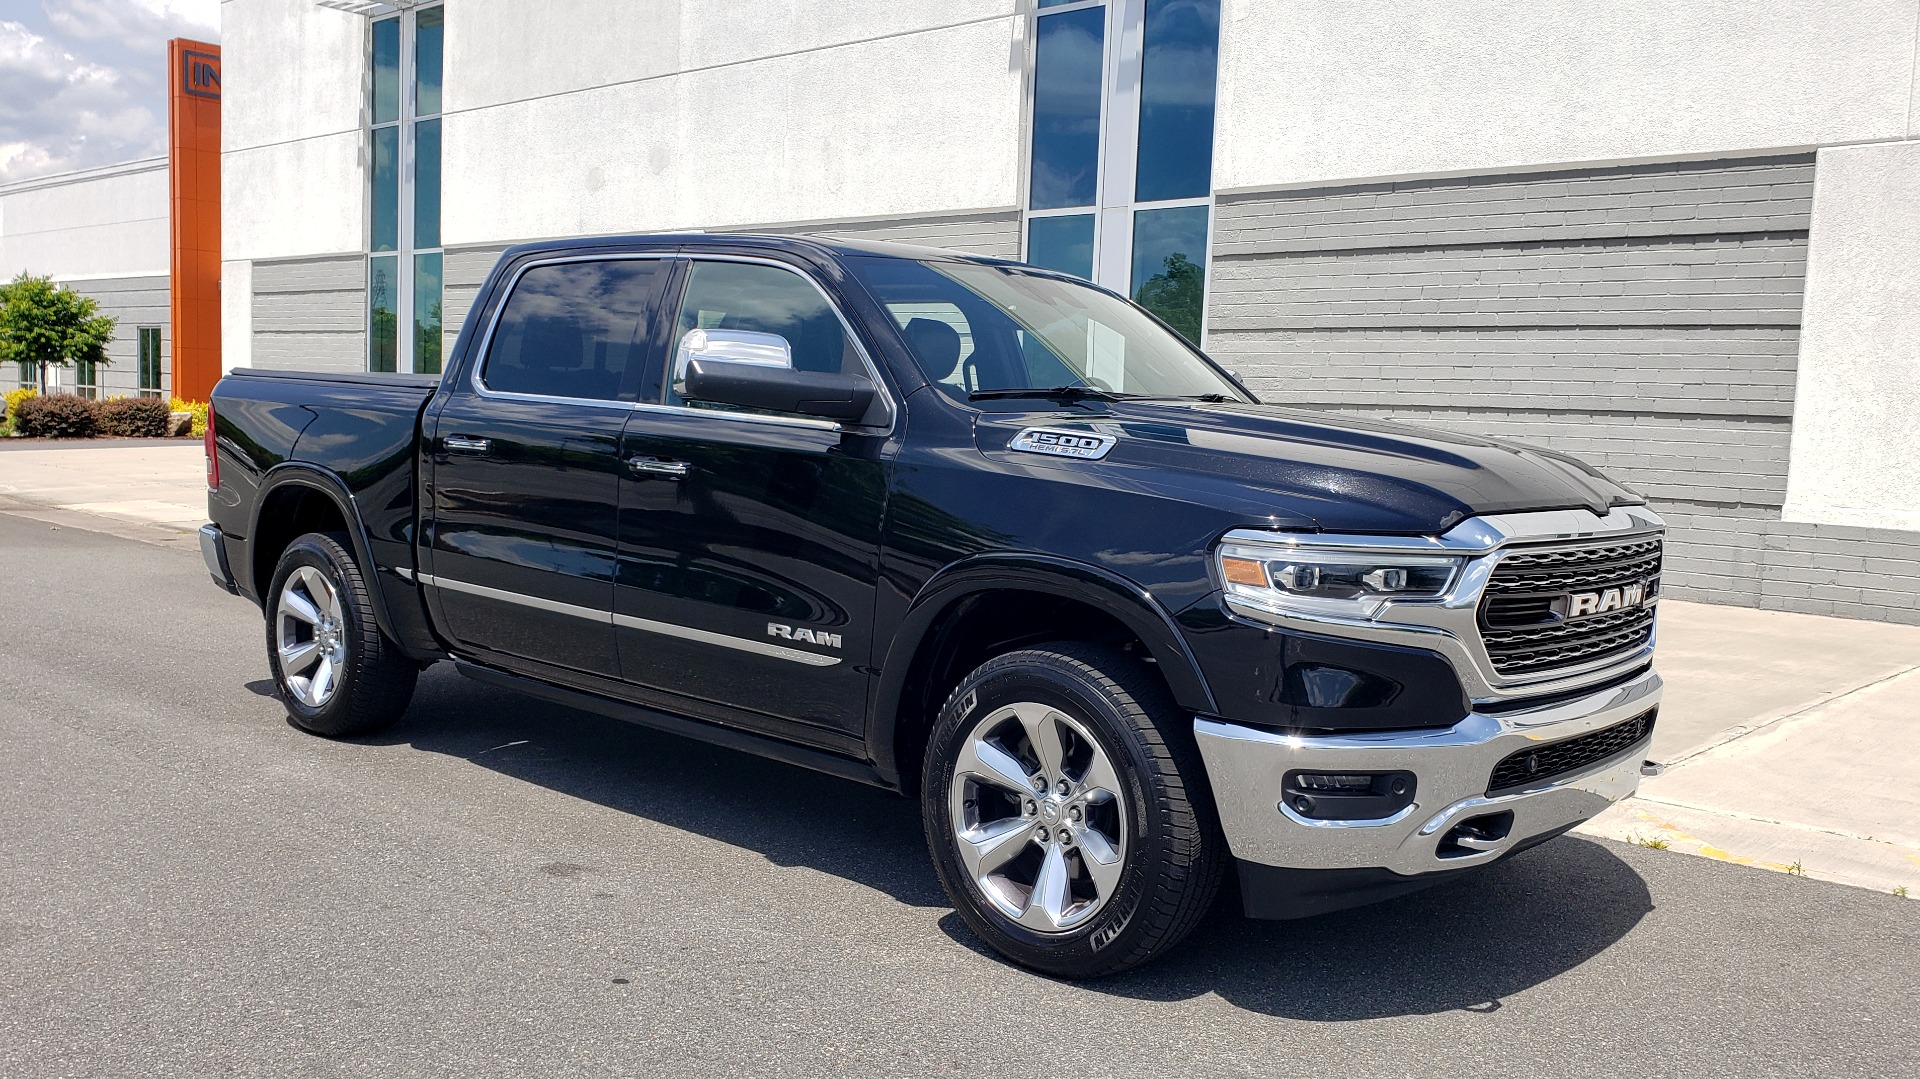 Used 2019 Ram 1500 LIMITED / NAV / PANO-ROOF / TOW PKG / H/K SND / REARVIEW for sale $46,995 at Formula Imports in Charlotte NC 28227 5